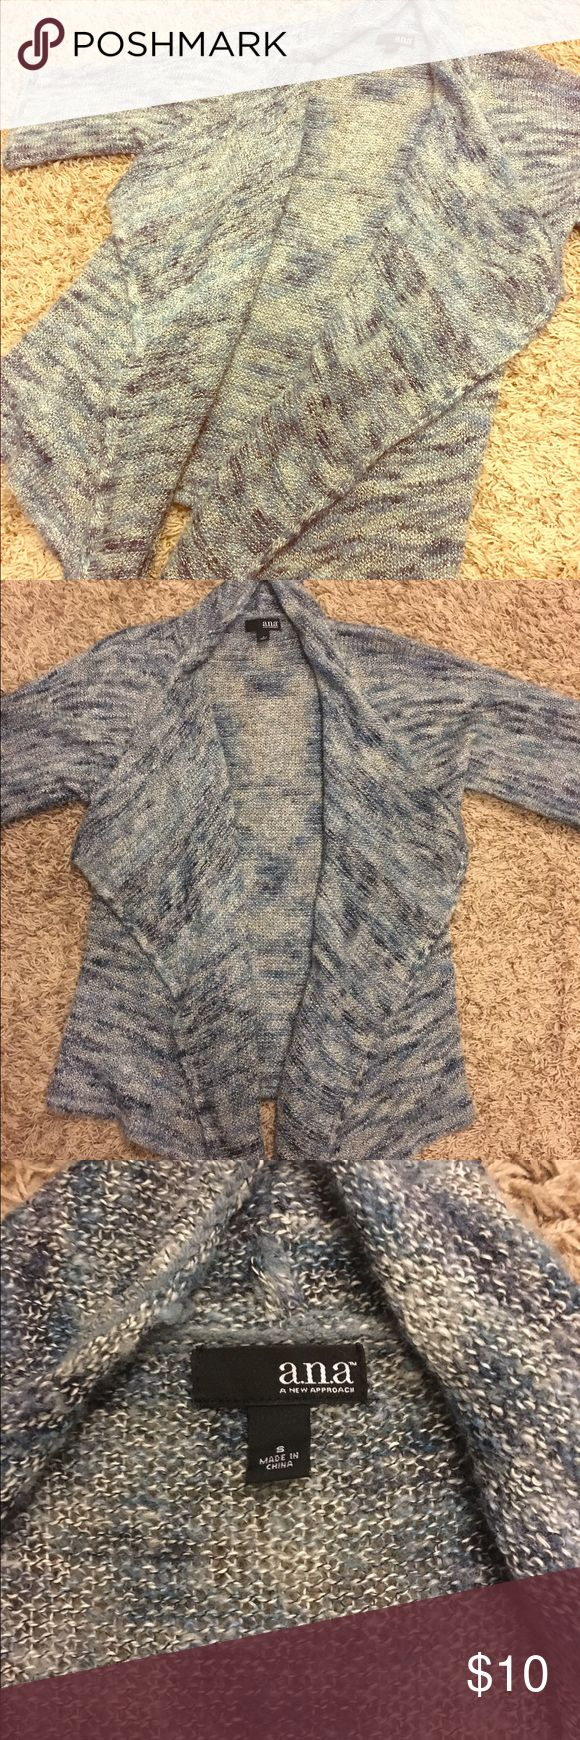 a. n. a. Blue Cardigan Really soft short sleeve cardigan! The front has extra material making it easy to wrap around like a blanket. It's a light blue mesh color with some white and grey. a.n.a Sweaters Cardigans